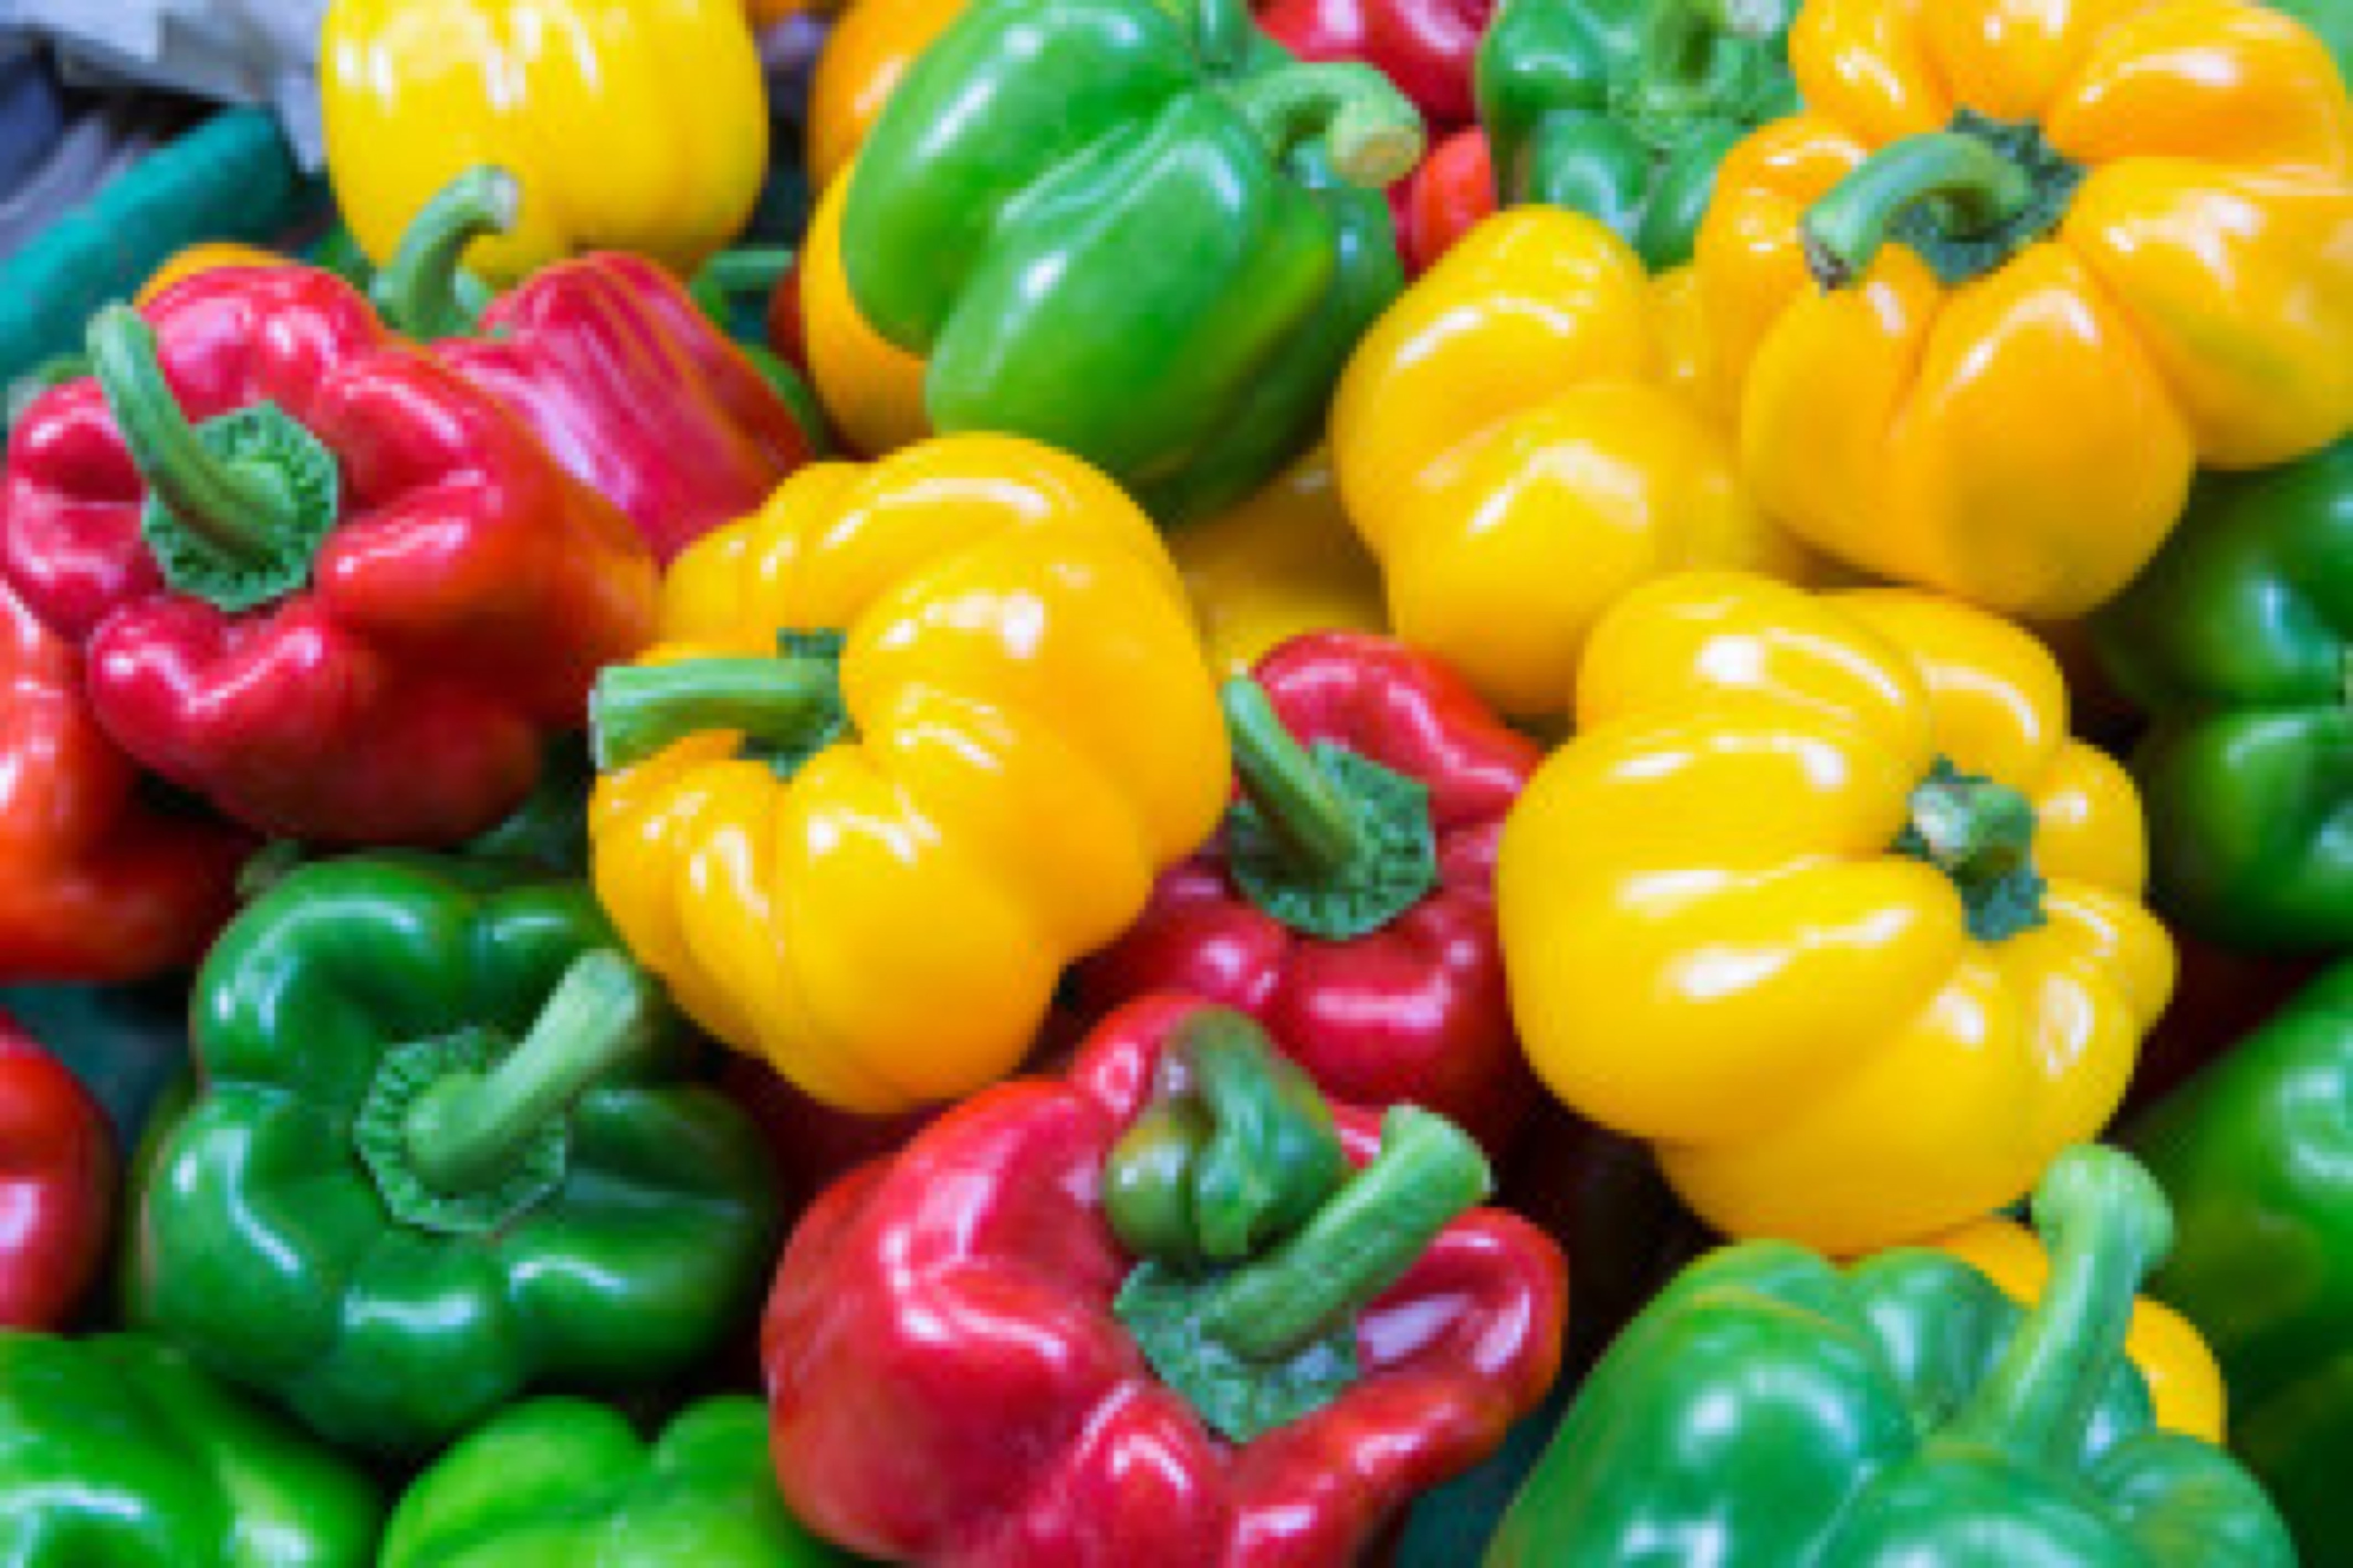 Colorful bell peppers ready for sales in fresh market, Bangkok, Thailand